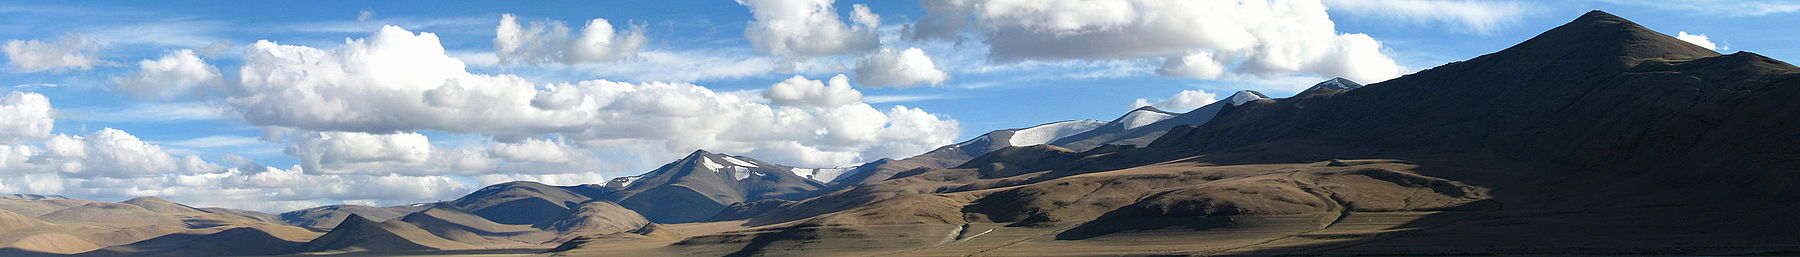 Mountains in eastern Ladakh